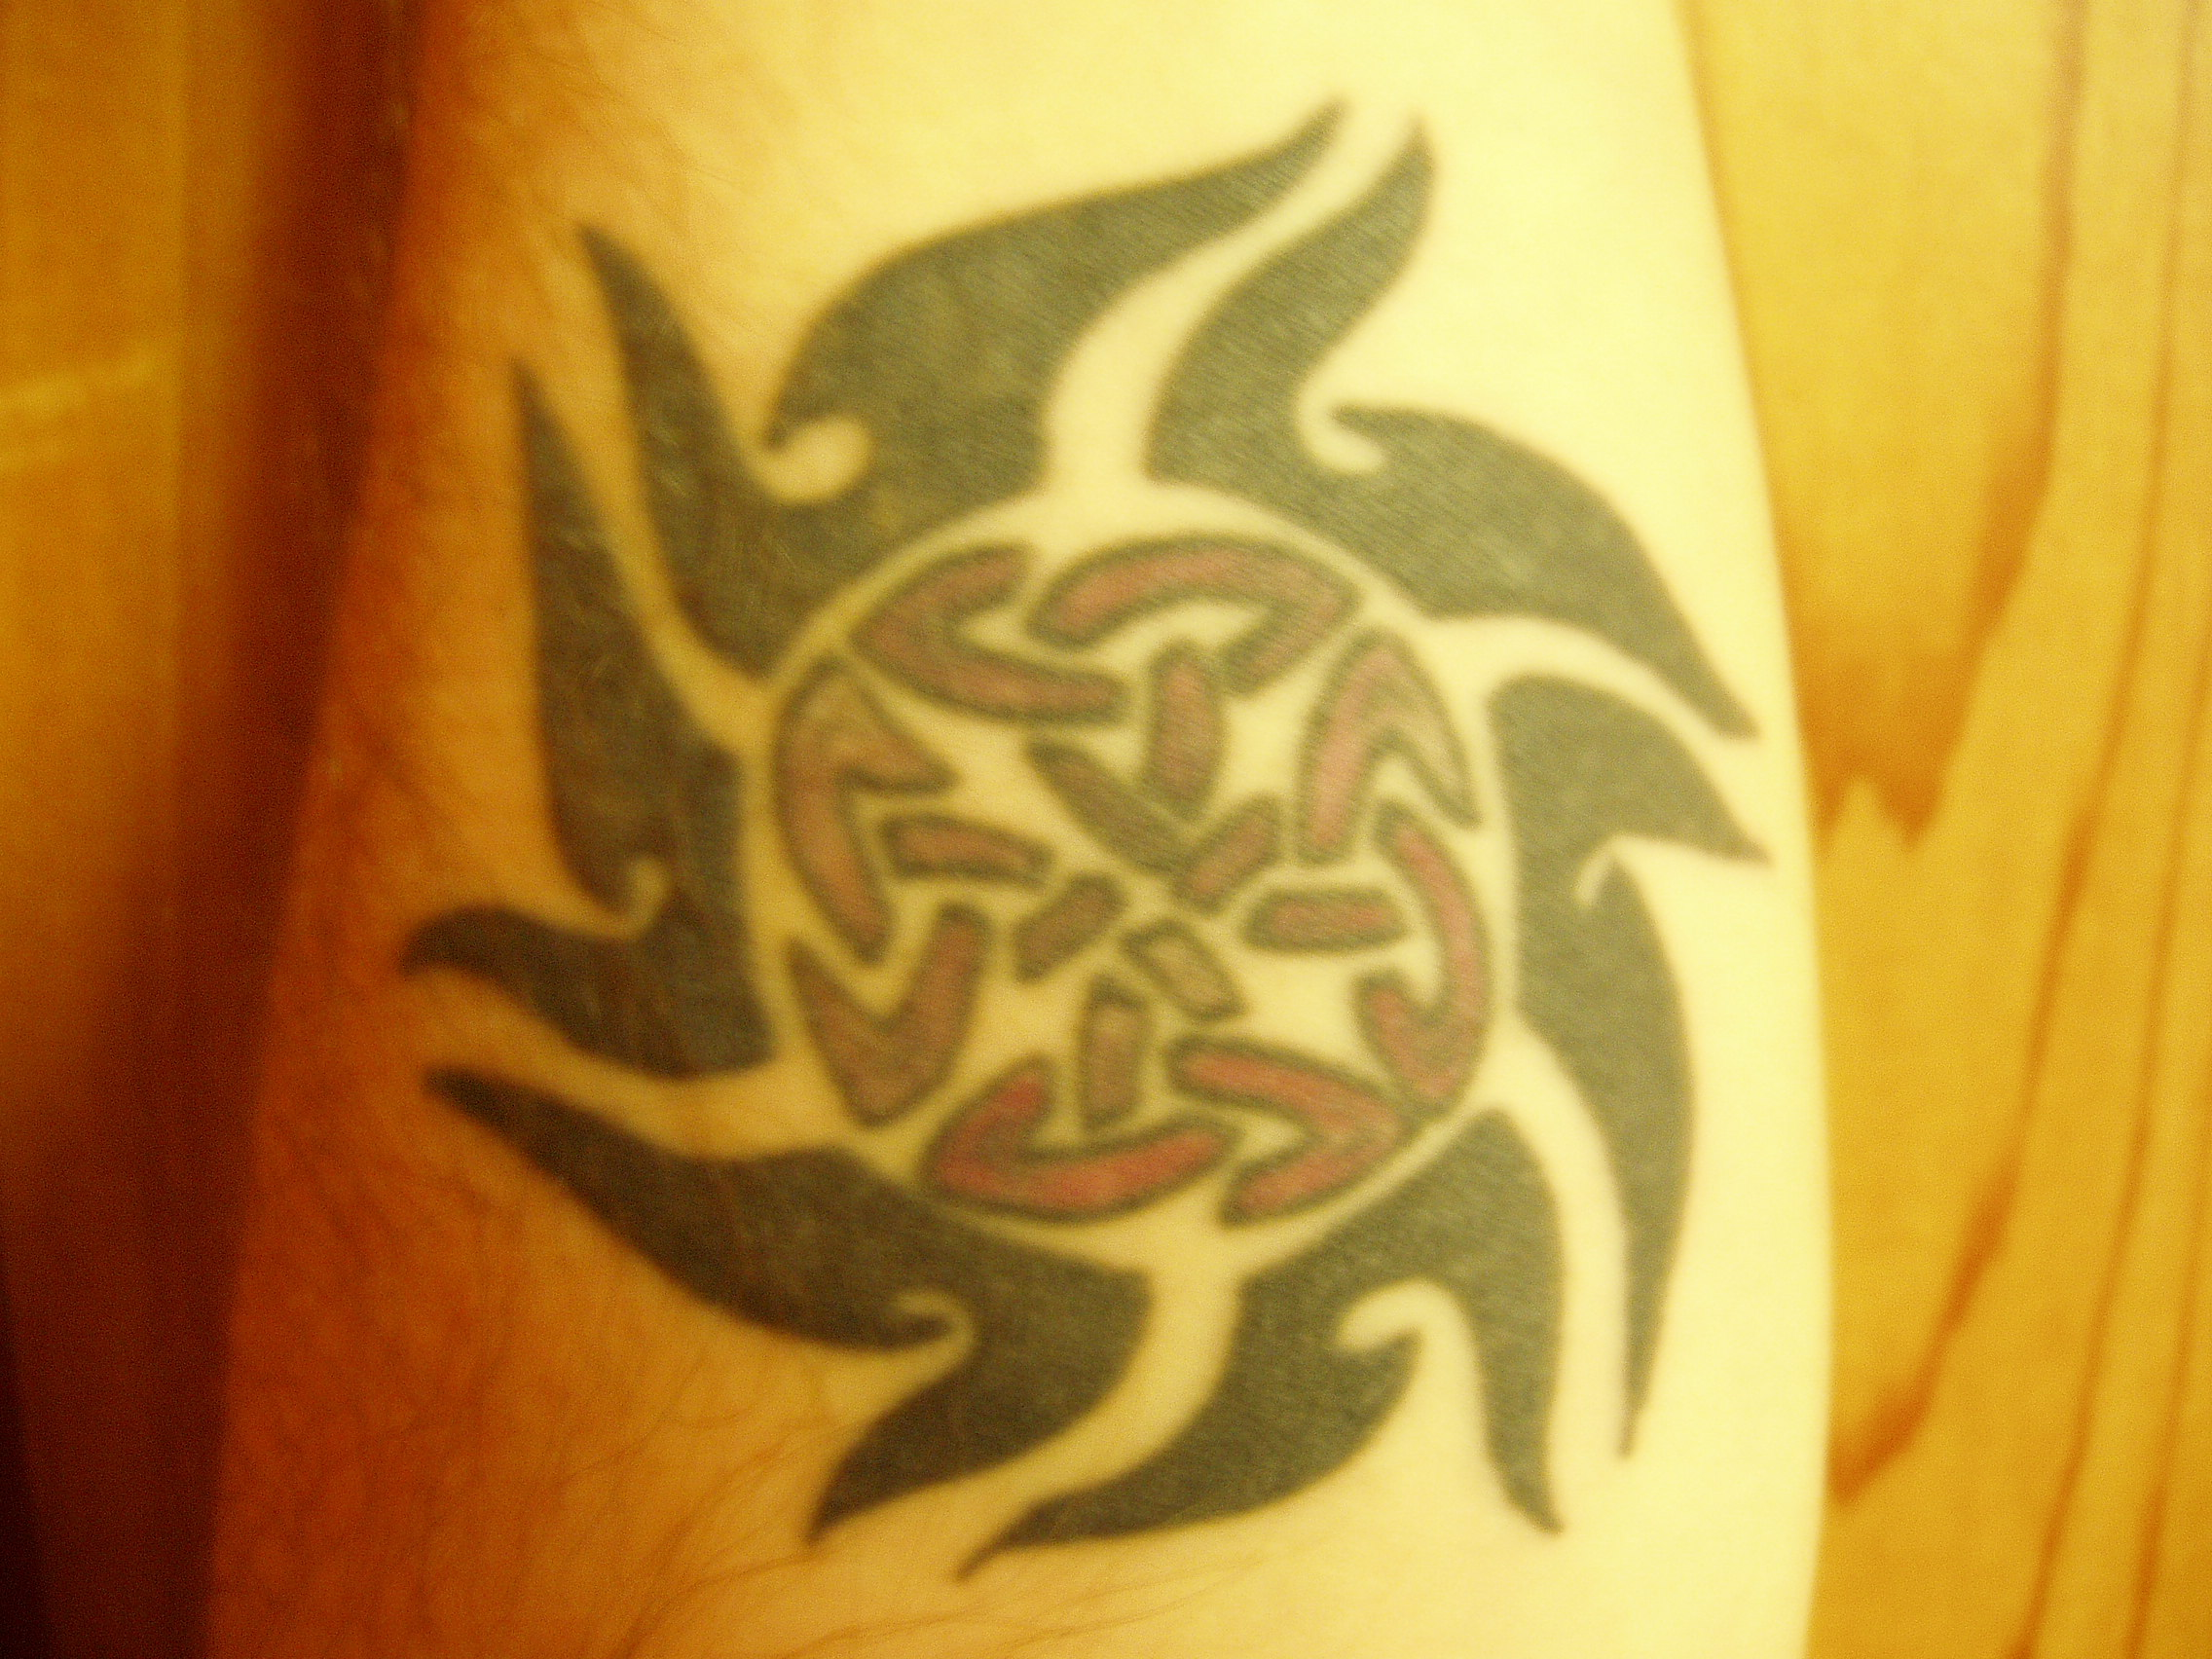 Celtic Sun tattoo